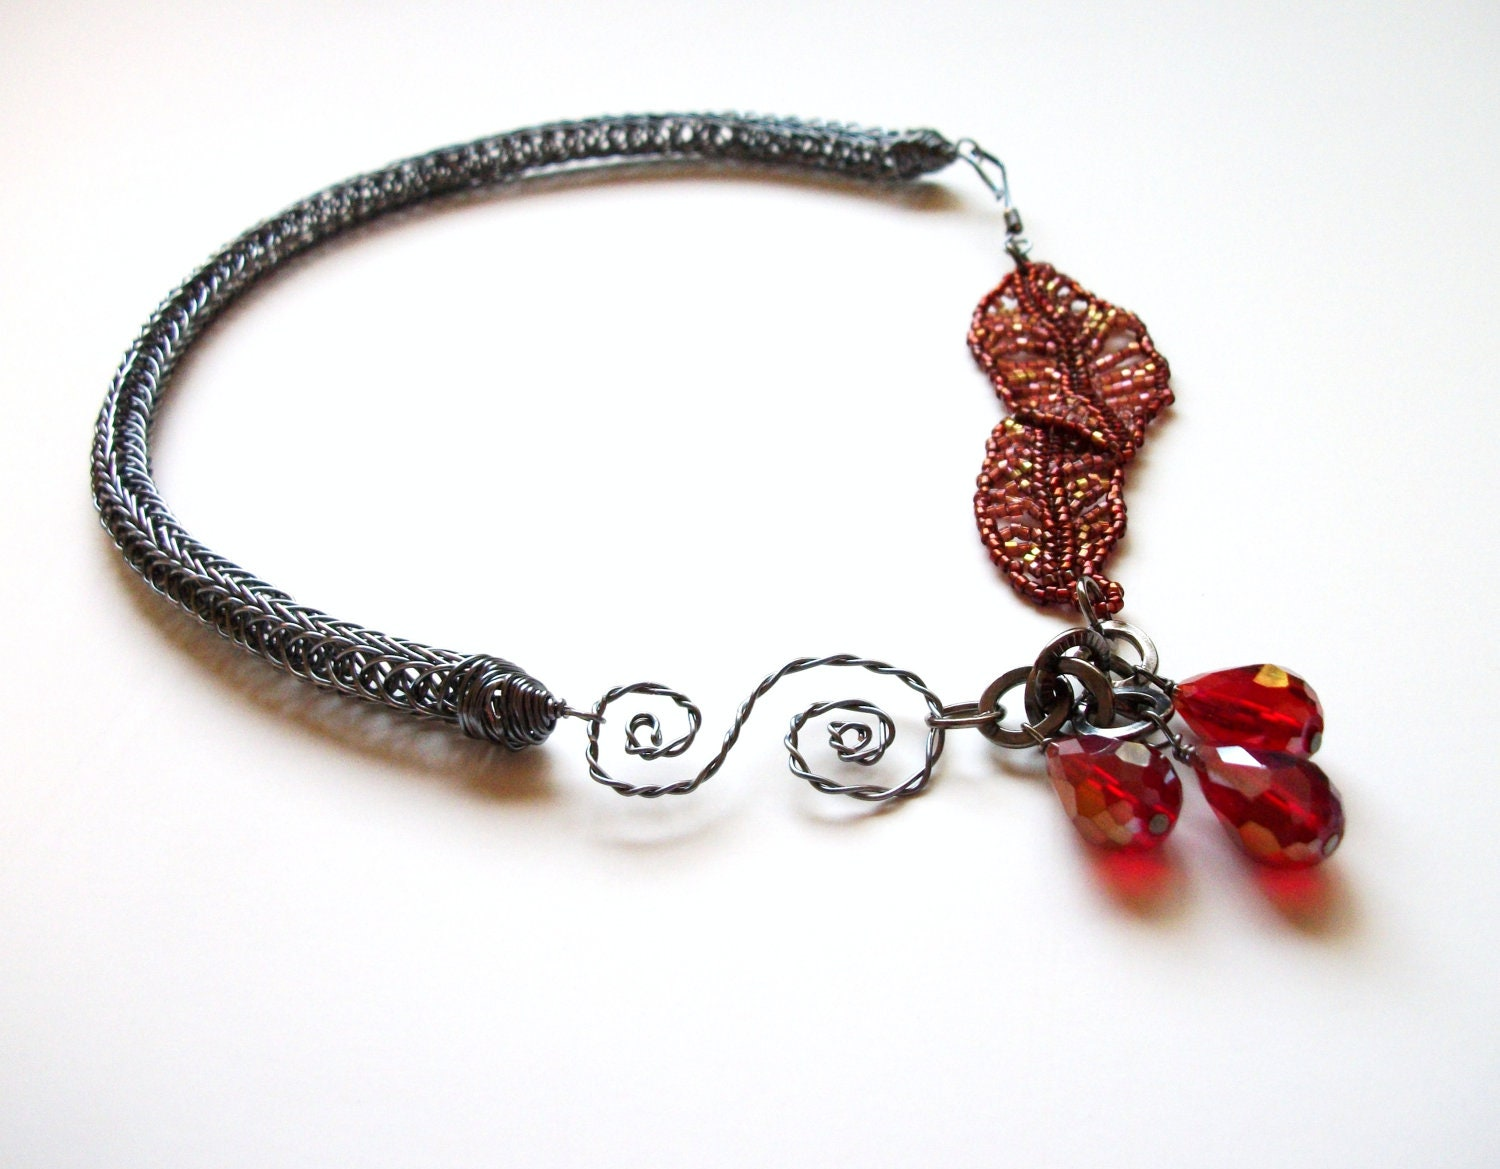 Viking Knit Necklace - Asymmetrical Beadwoven Autumn Leaves in Red and Gunmetal Grey - TerahClassyCreations